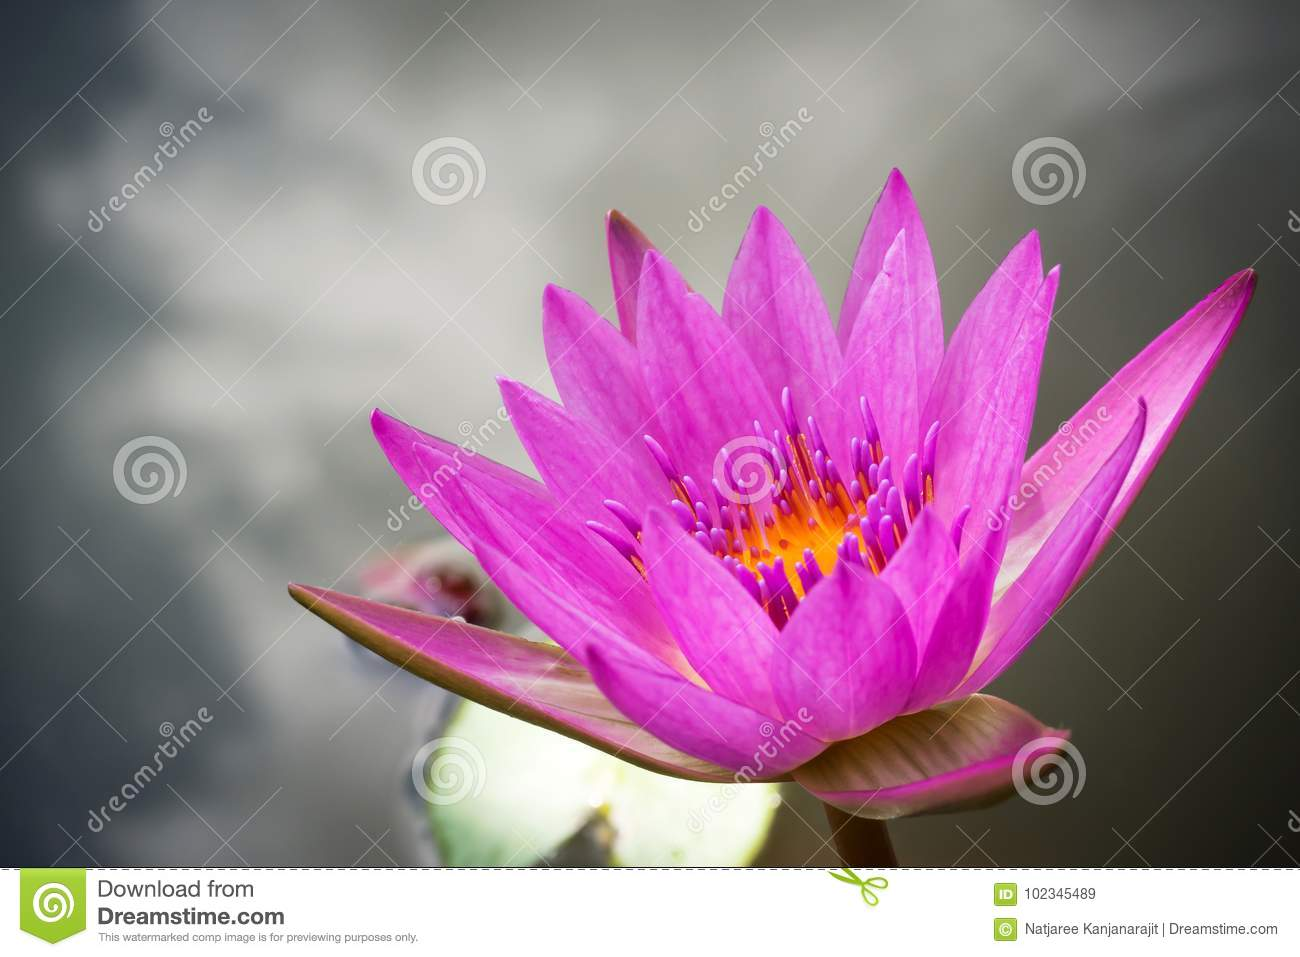 Purple lotus blooming in a pound aquatic plant tropical flower purple lotus blooming in a pound aquatic plant tropical flower symbolic of zen or buddhism nature background dark vignette and copy space mightylinksfo